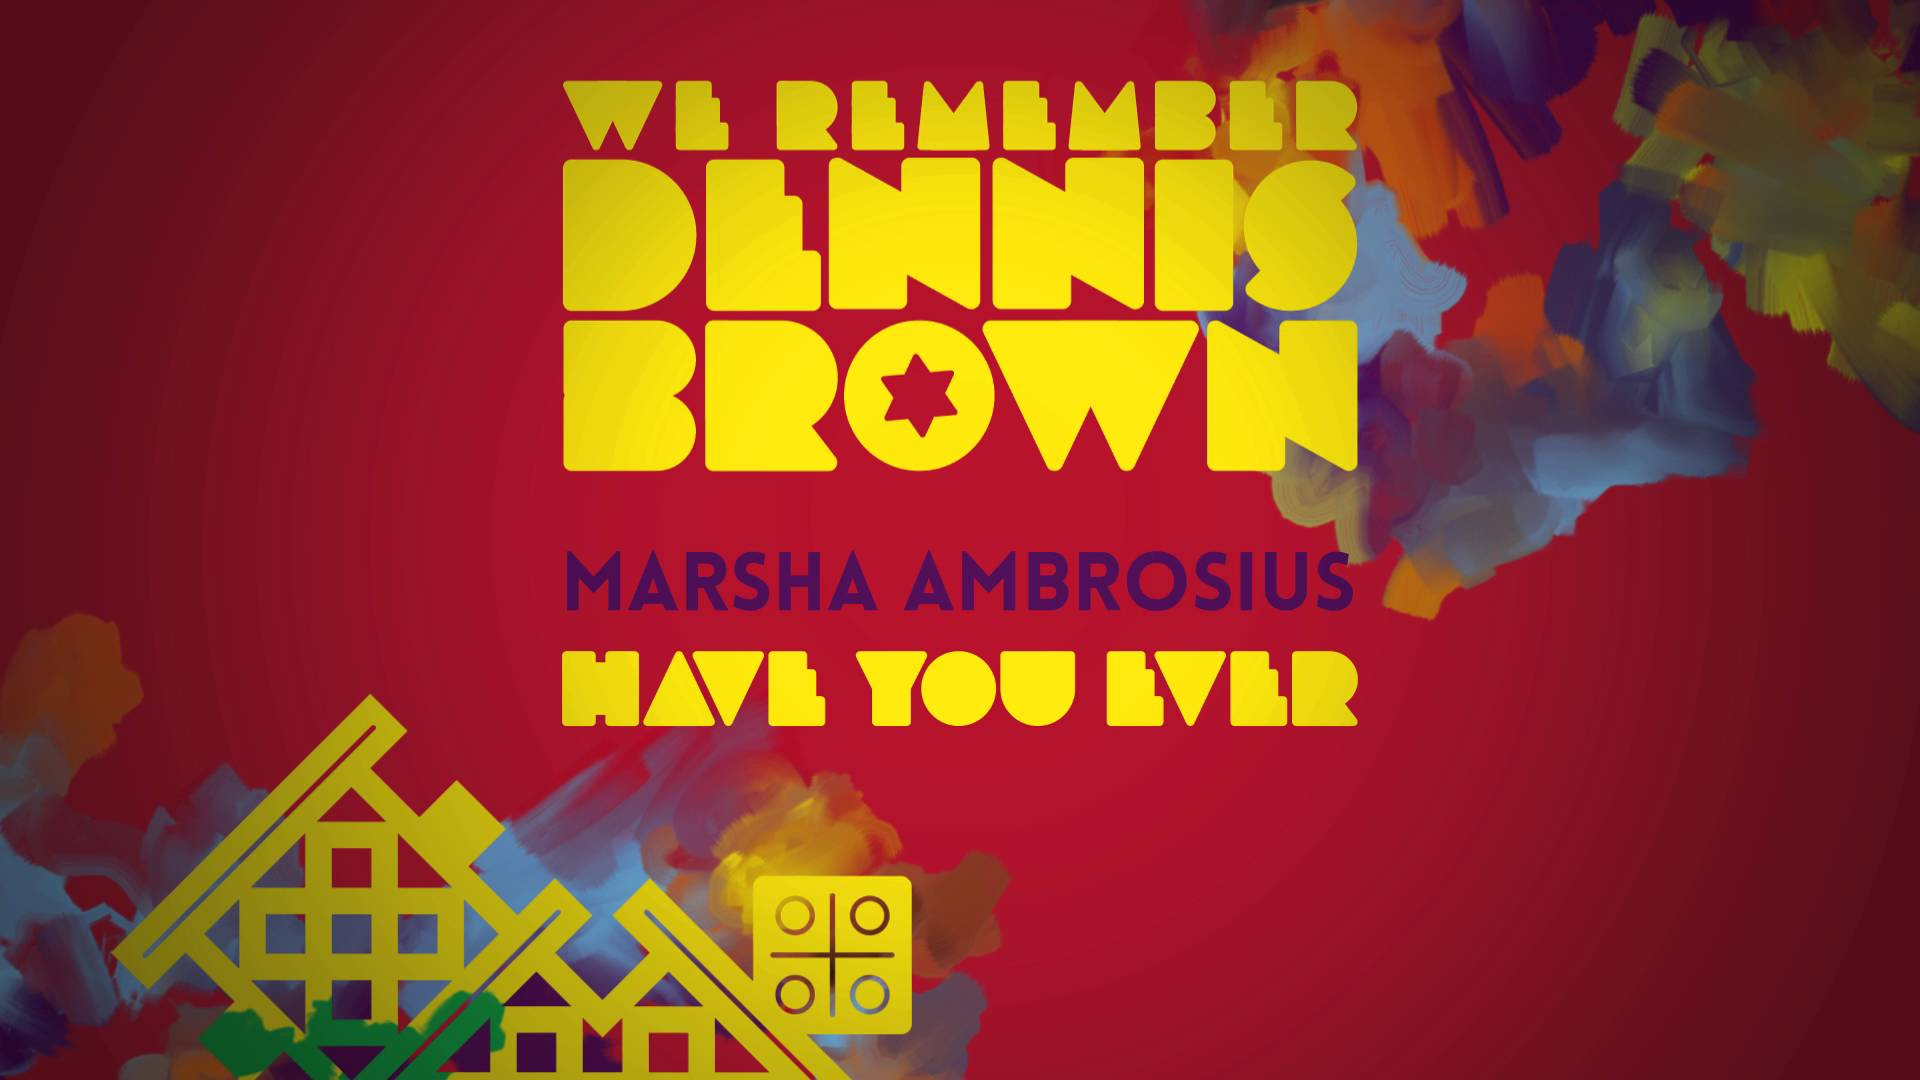 Marsha Ambrosius Have You Ever Dennis Brown